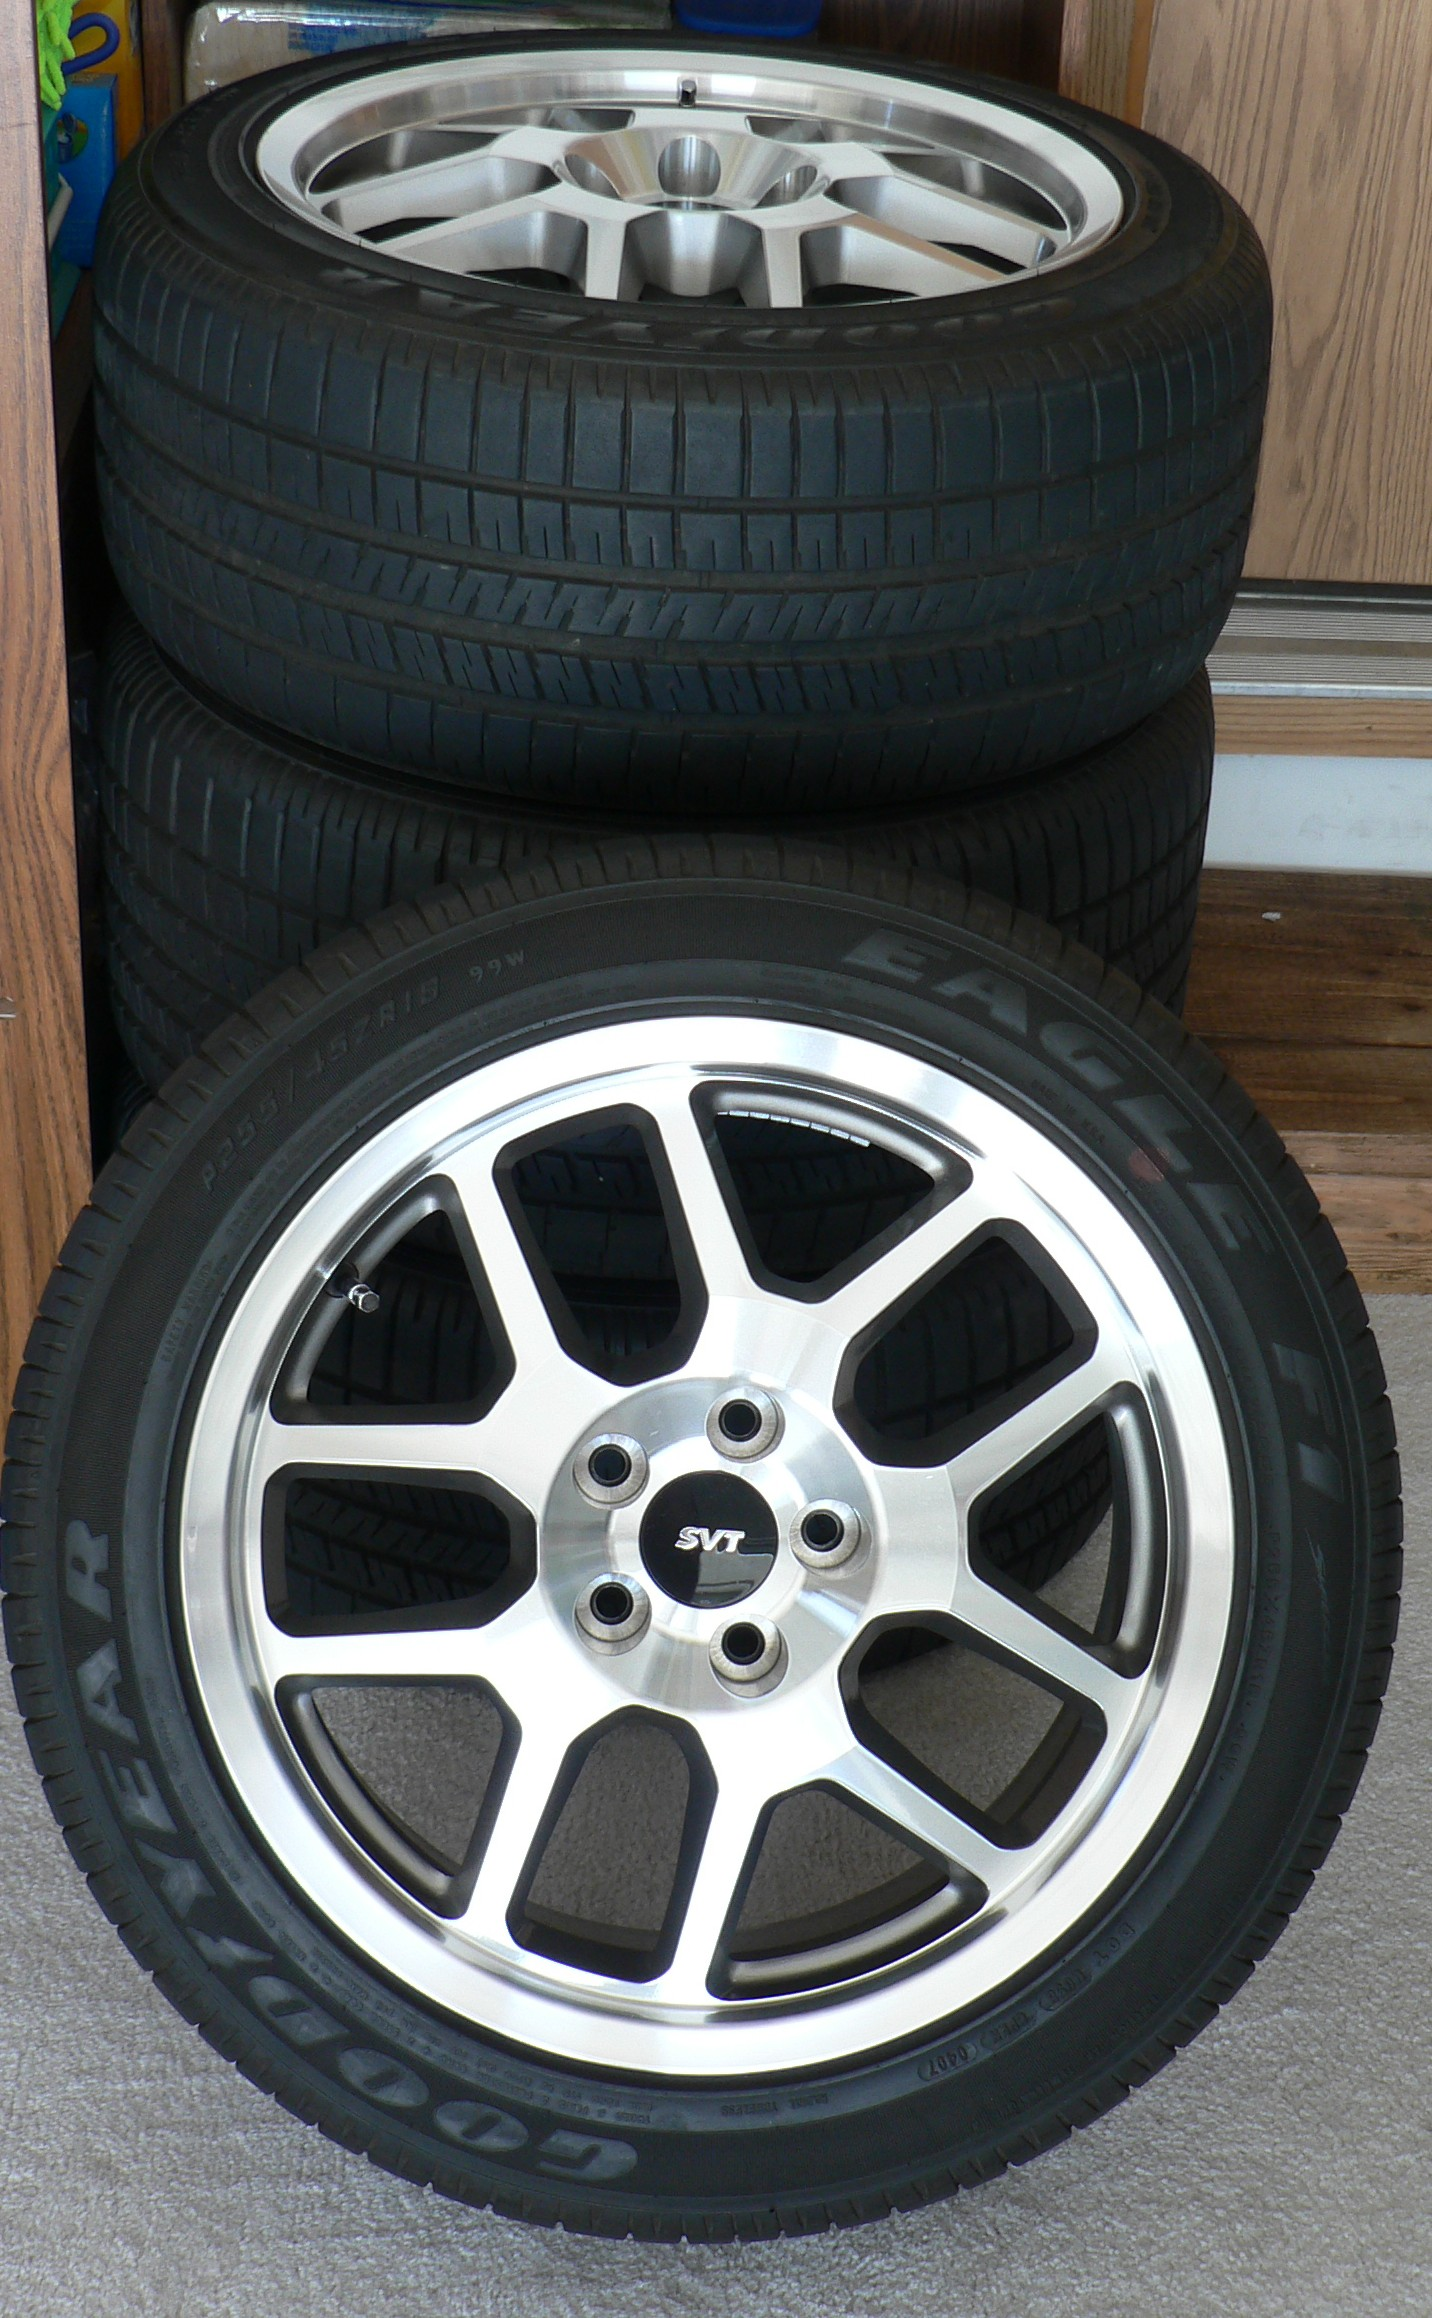 Click image for larger version  Name:Tire stack.JPG Views:369 Size:672.8 KB ID:45519